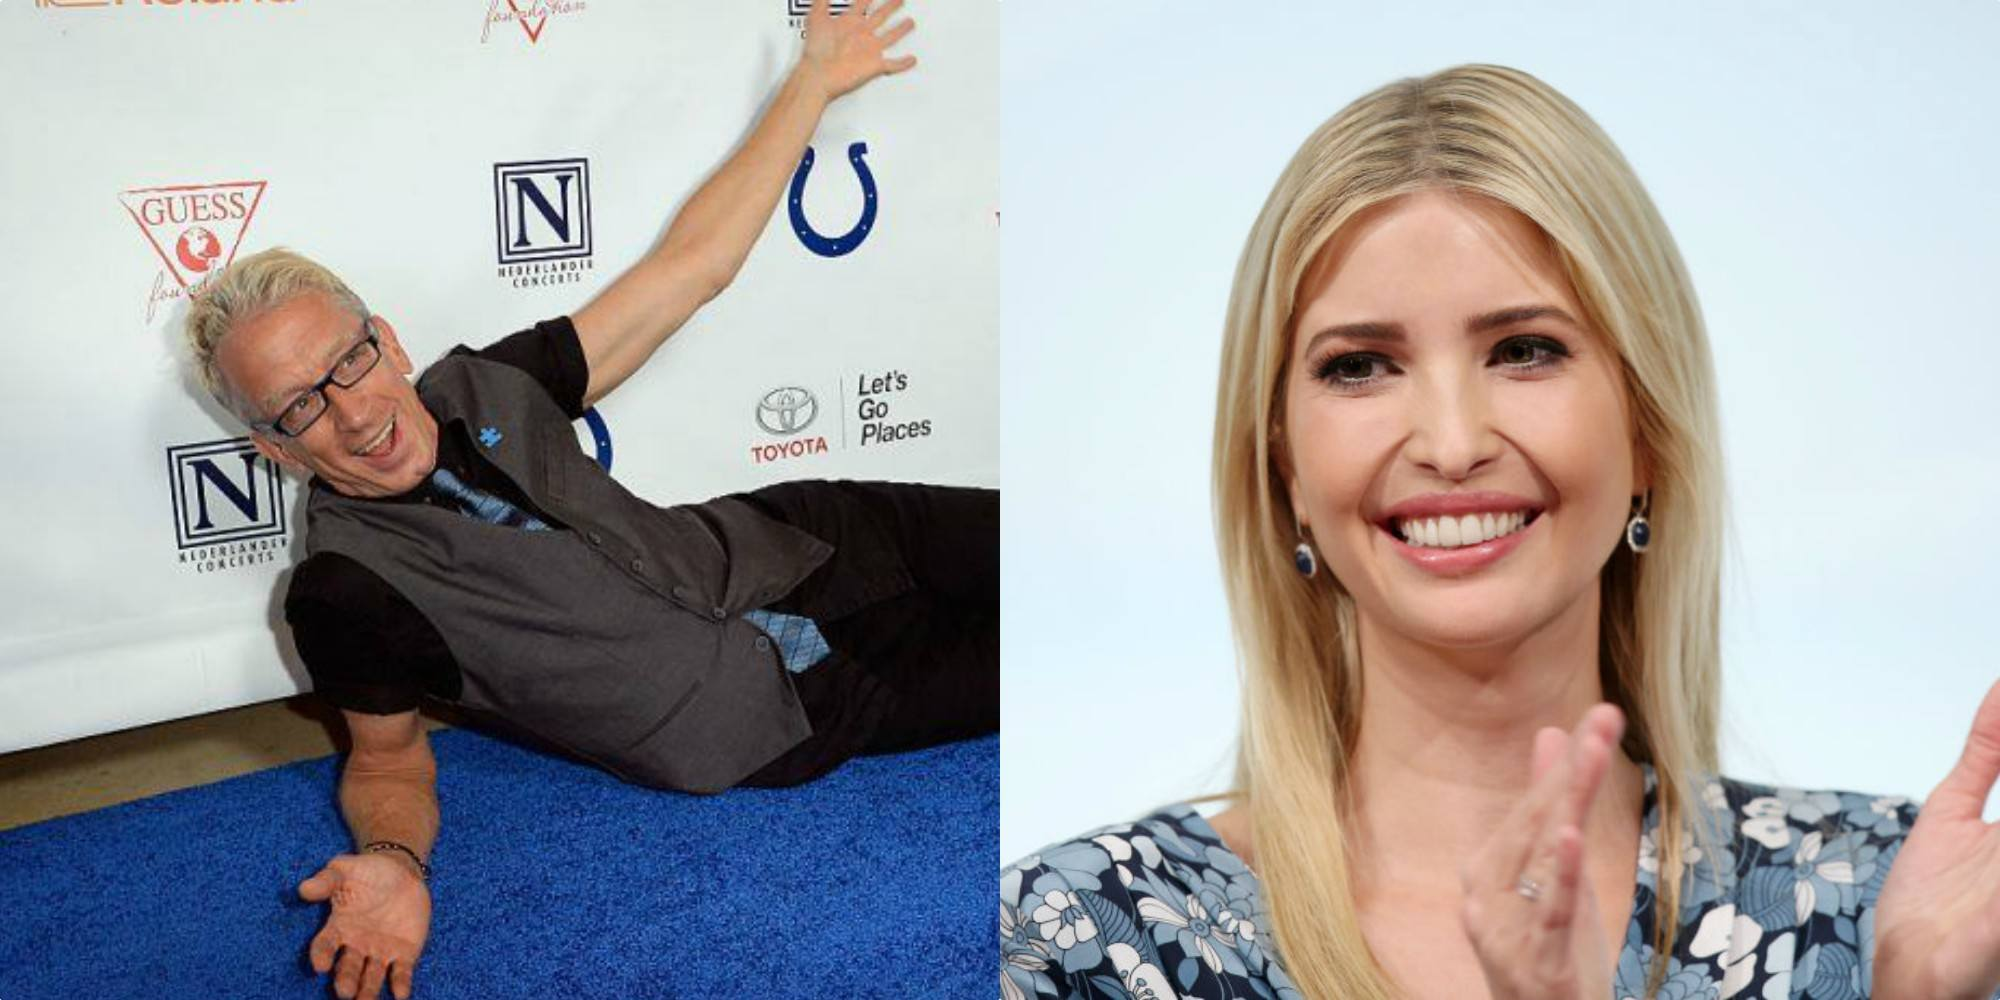 Andy Dick and Ivanka Trump